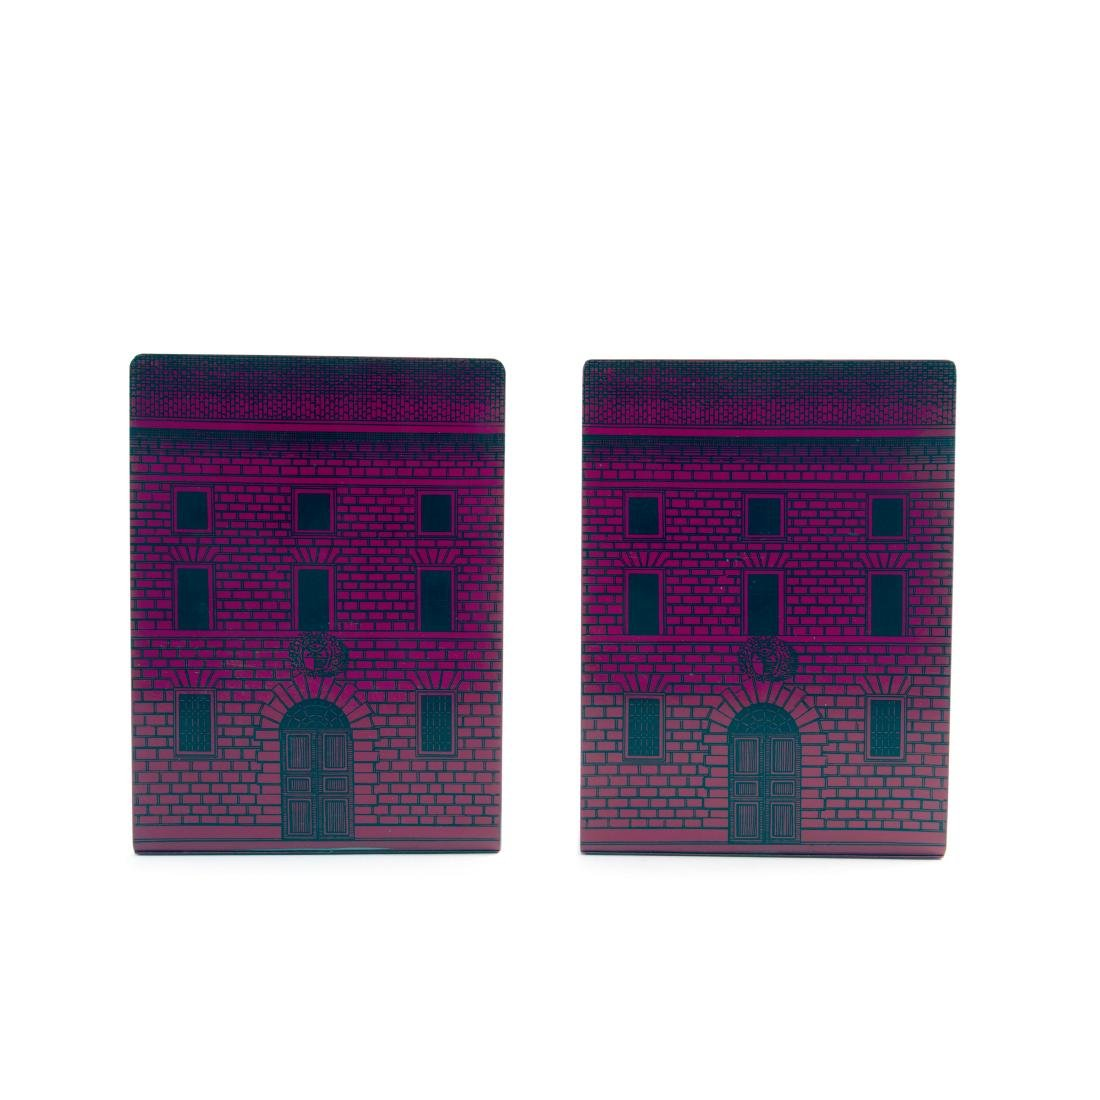 Two 'Architettura' bookends, 1950/60s